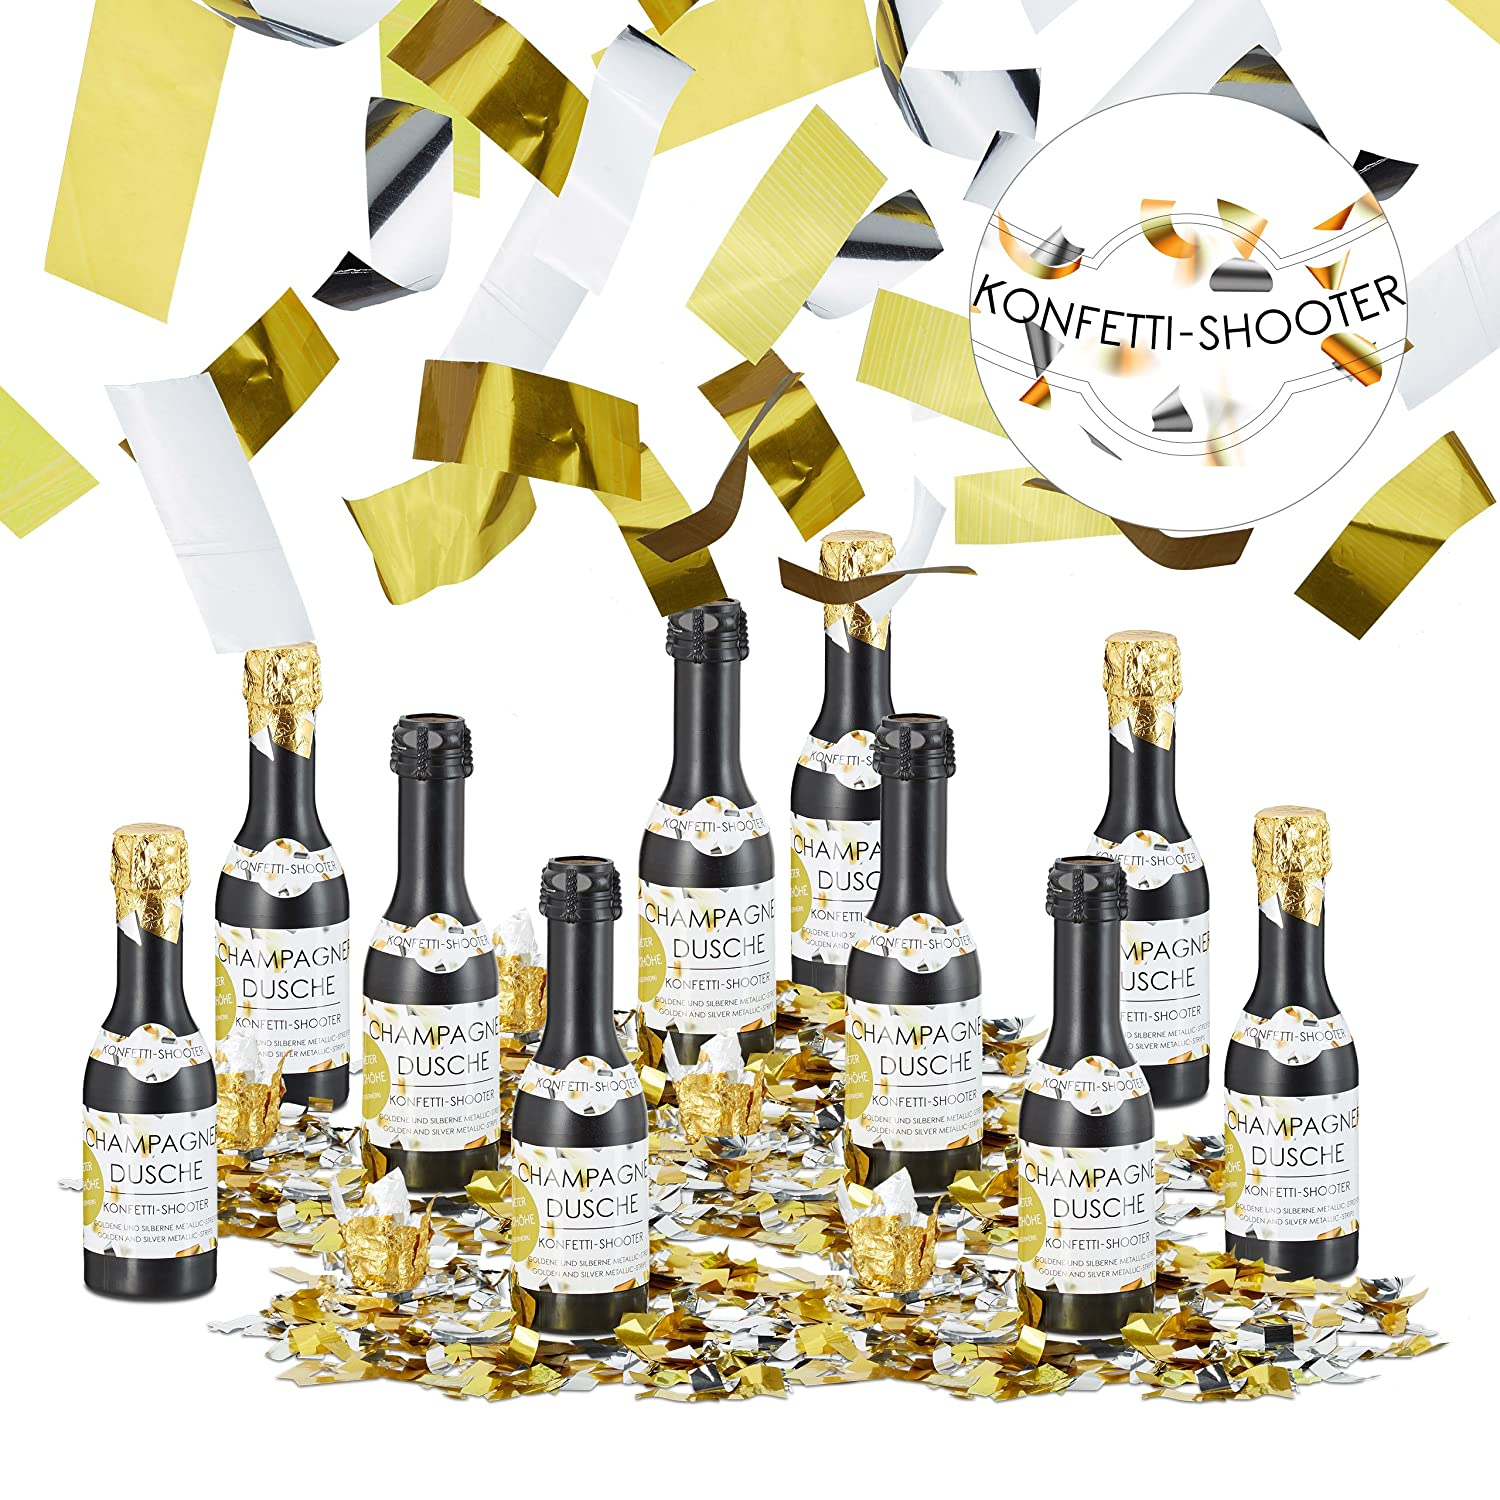 NEW RELAXDAYS PARTY POPPERS CONFETTI SHOOTER WEDDING BIRTHDAY GOLD SILVER